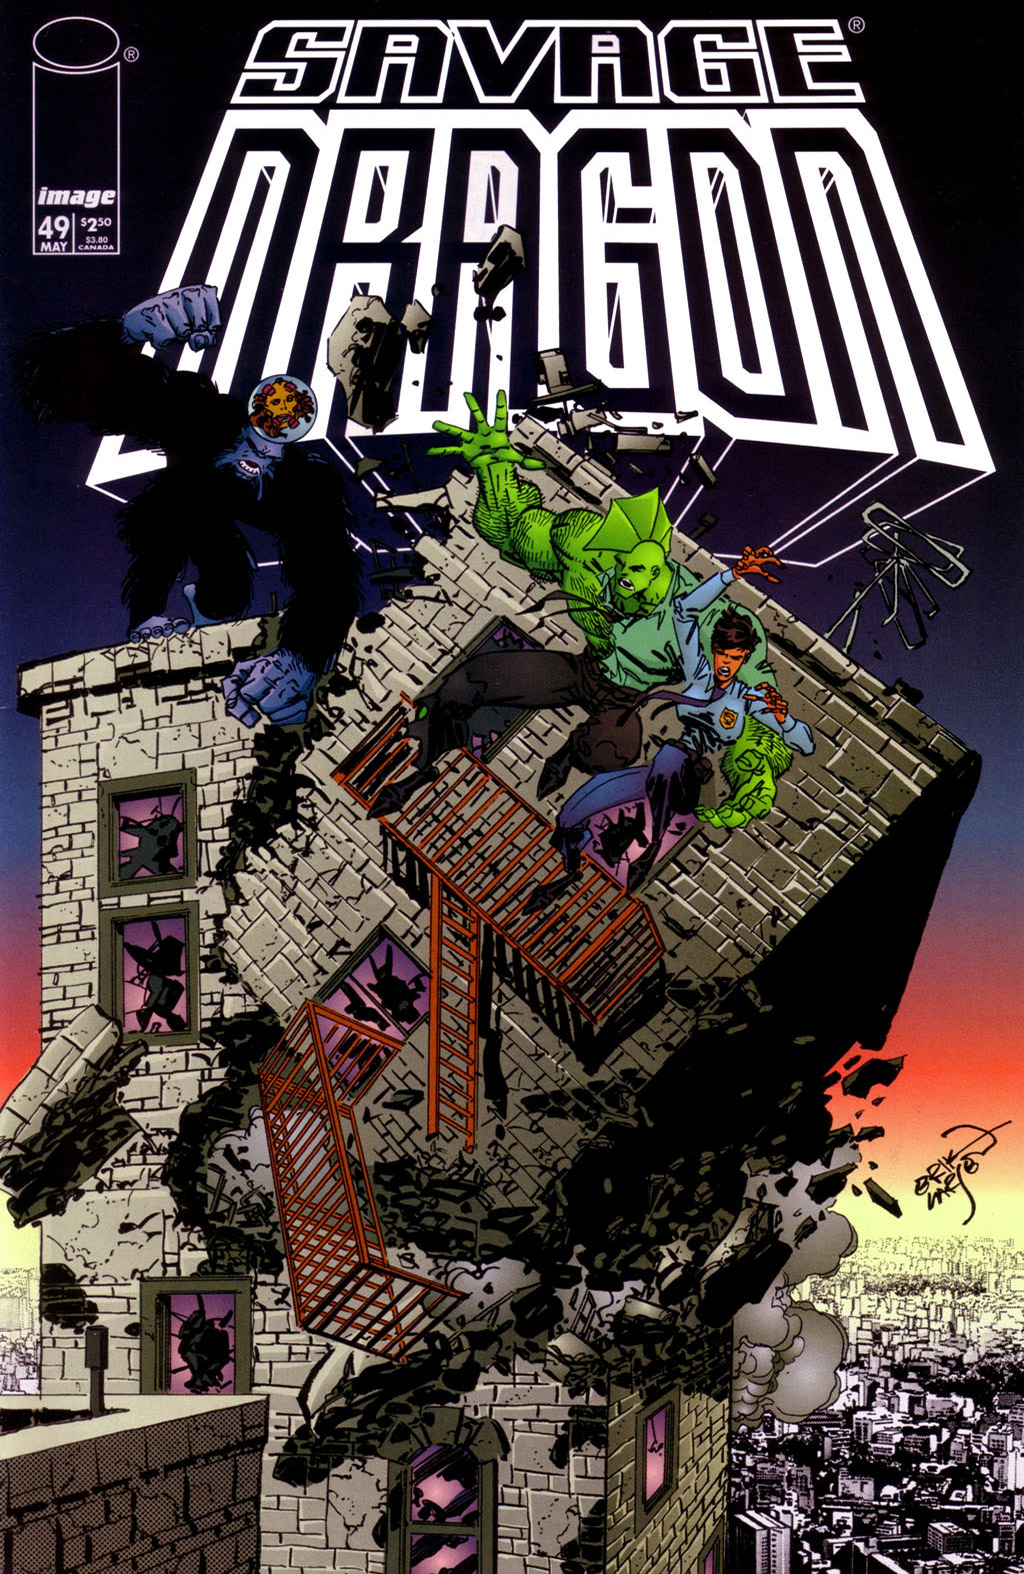 Cover Savage Dragon Vol.2 #49